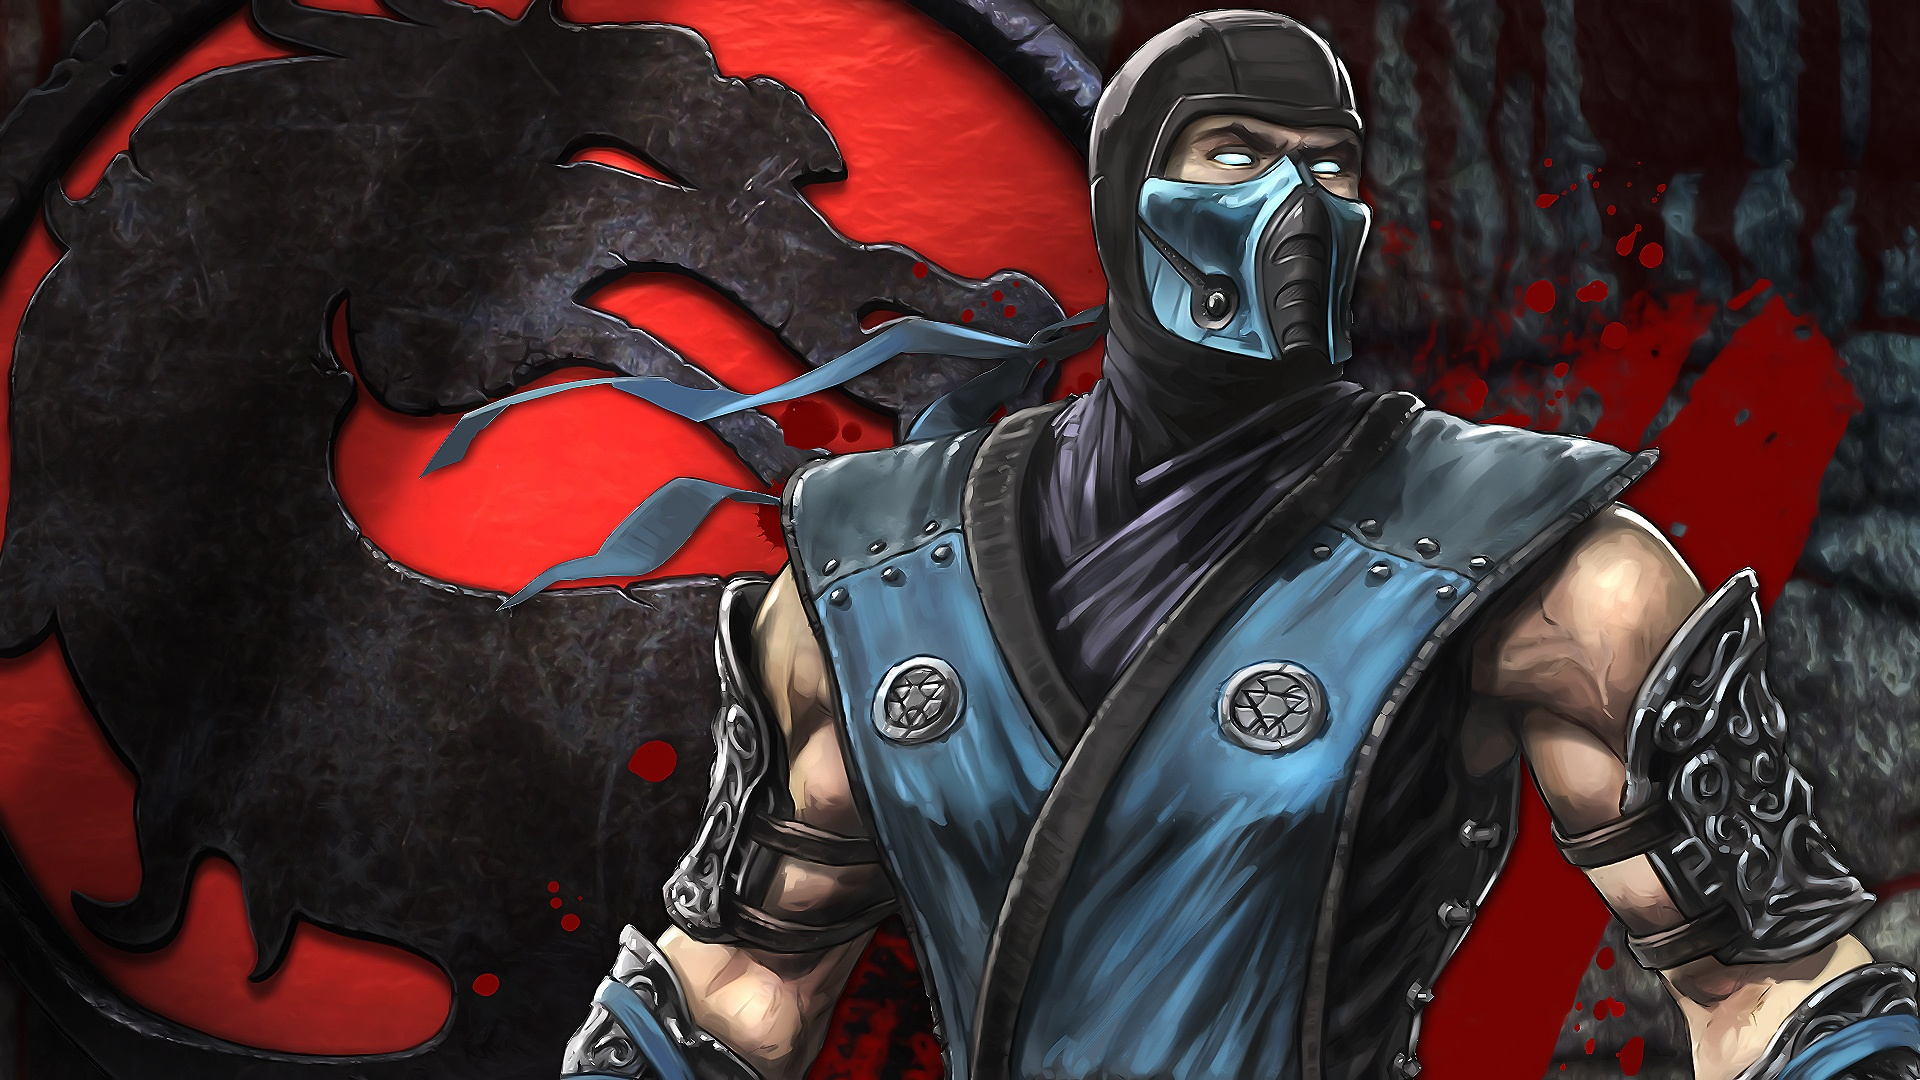 mortal kombat background A1